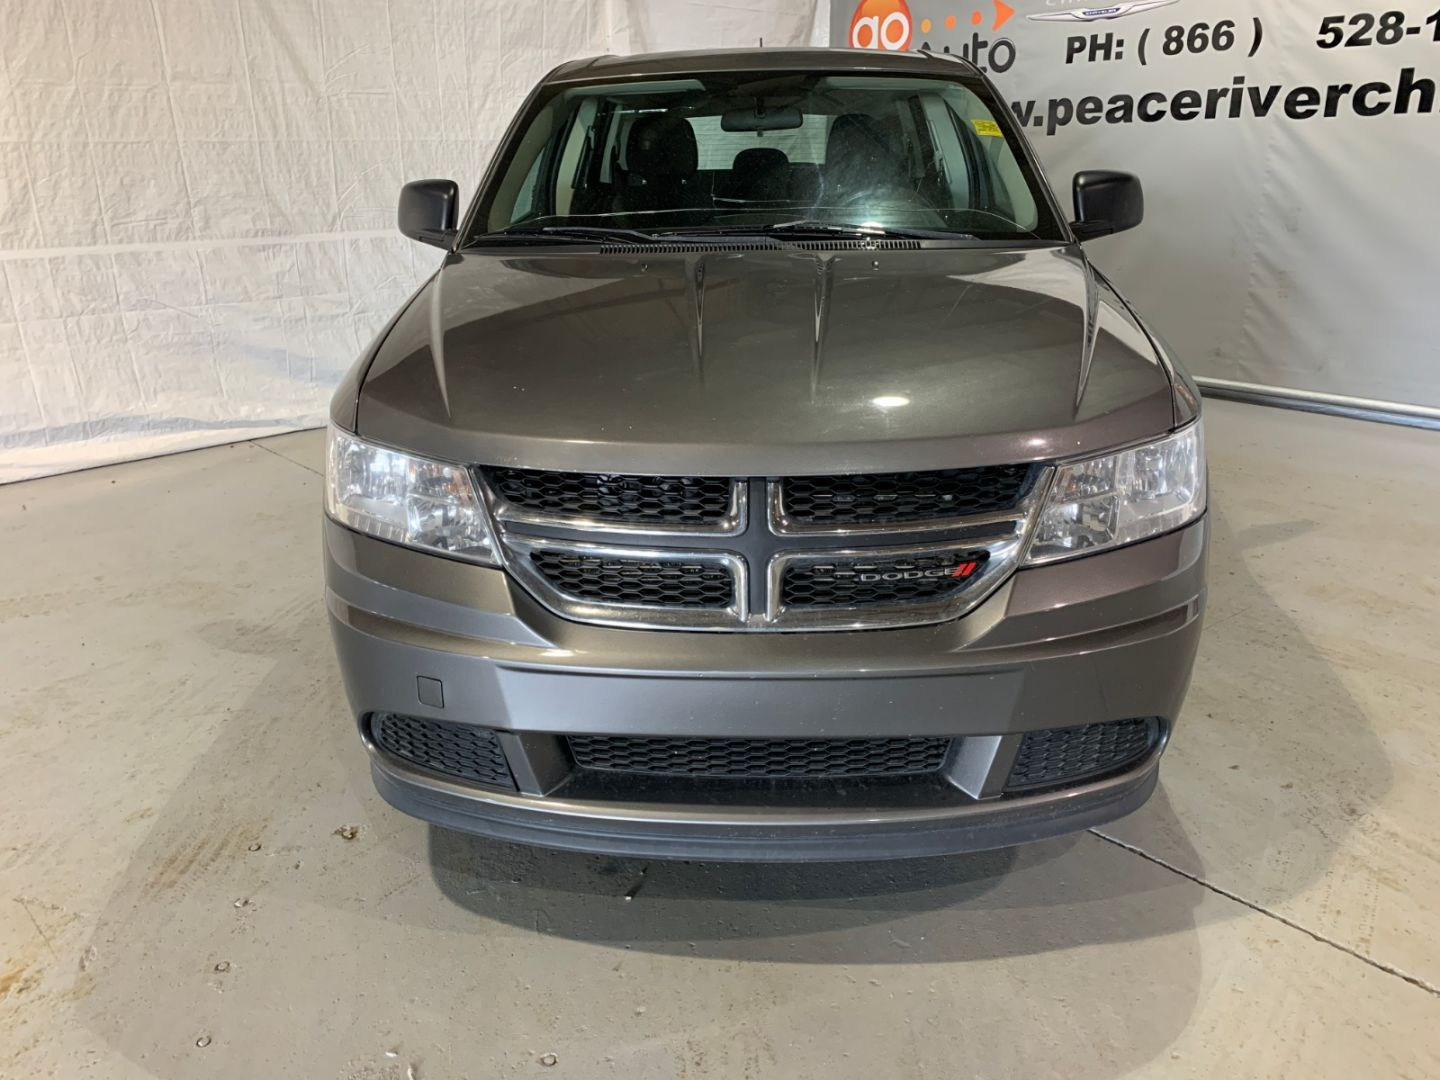 2013 Dodge Journey Canada Value Pkg for sale in Peace River, Alberta